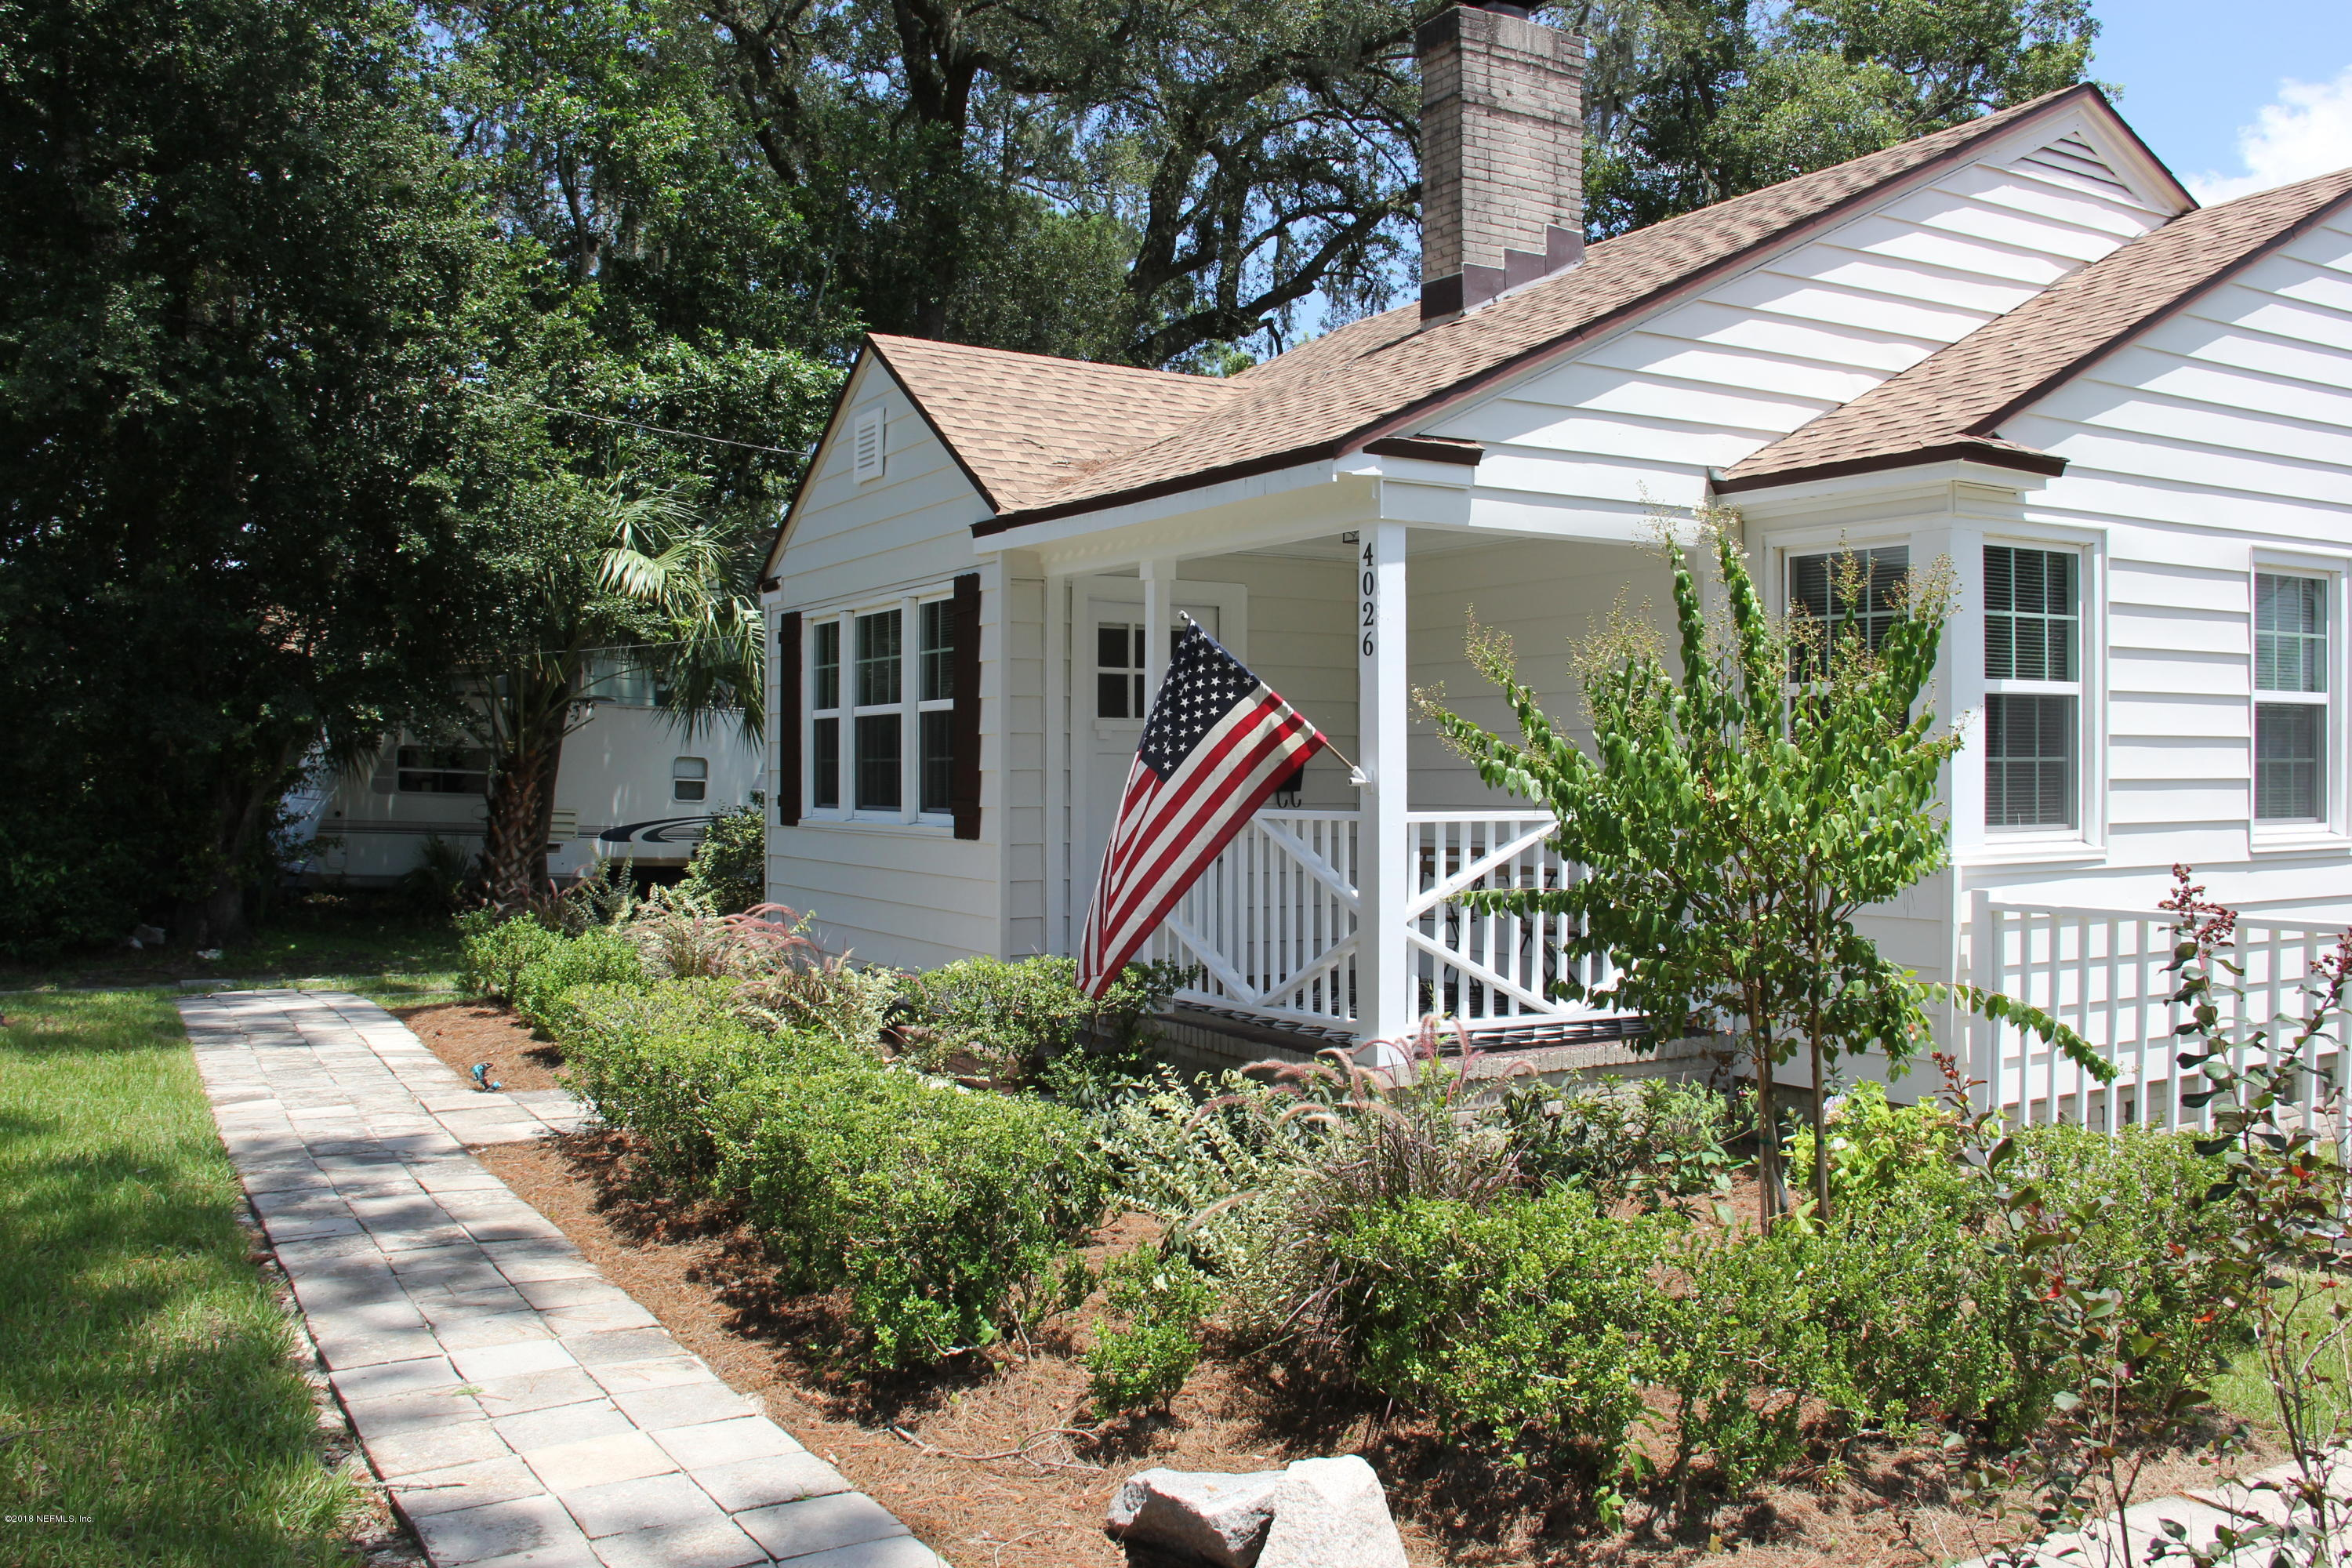 4026 BOONE PARK, JACKSONVILLE, FLORIDA 32205, 3 Bedrooms Bedrooms, ,1 BathroomBathrooms,Residential - single family,For sale,BOONE PARK,949419